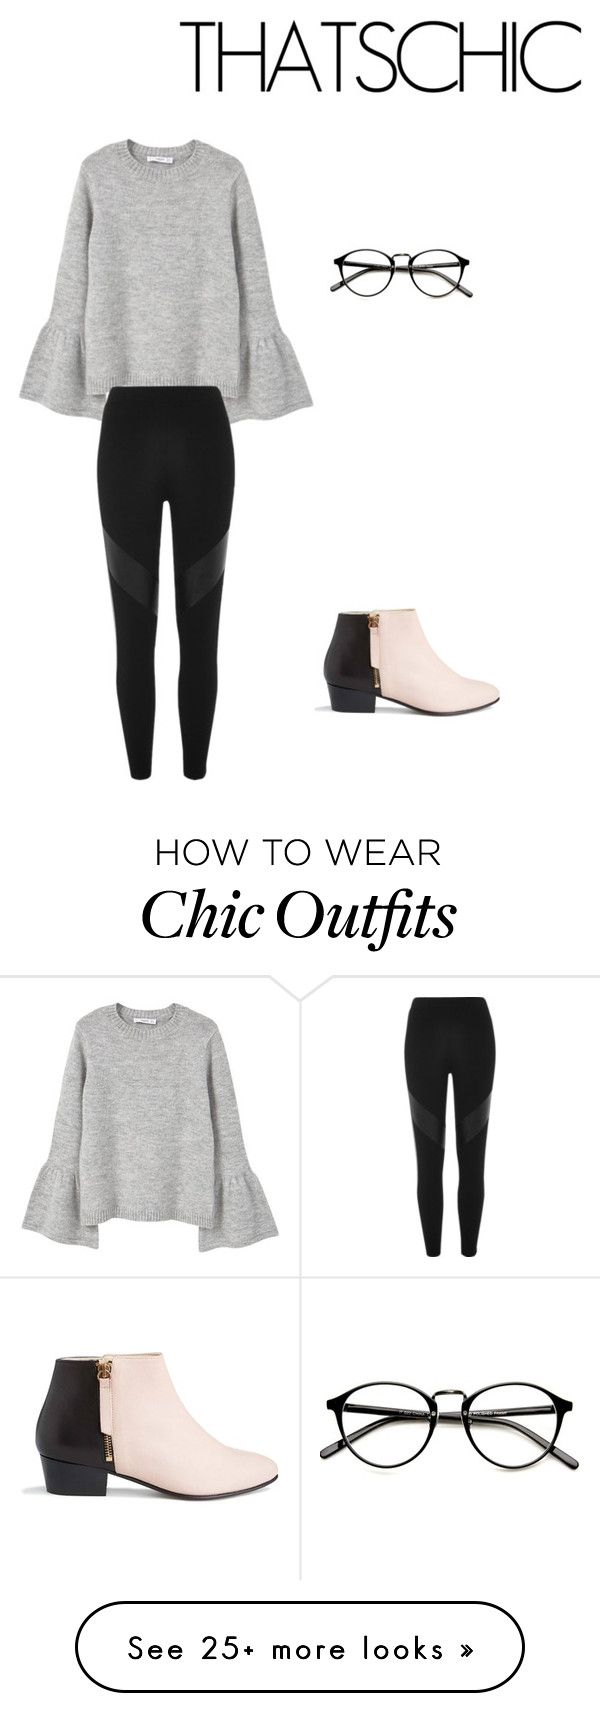 """""""Cozy"""" by ashbash11-1 on Polyvore featuring MANGO, River Island and Nine to Five"""